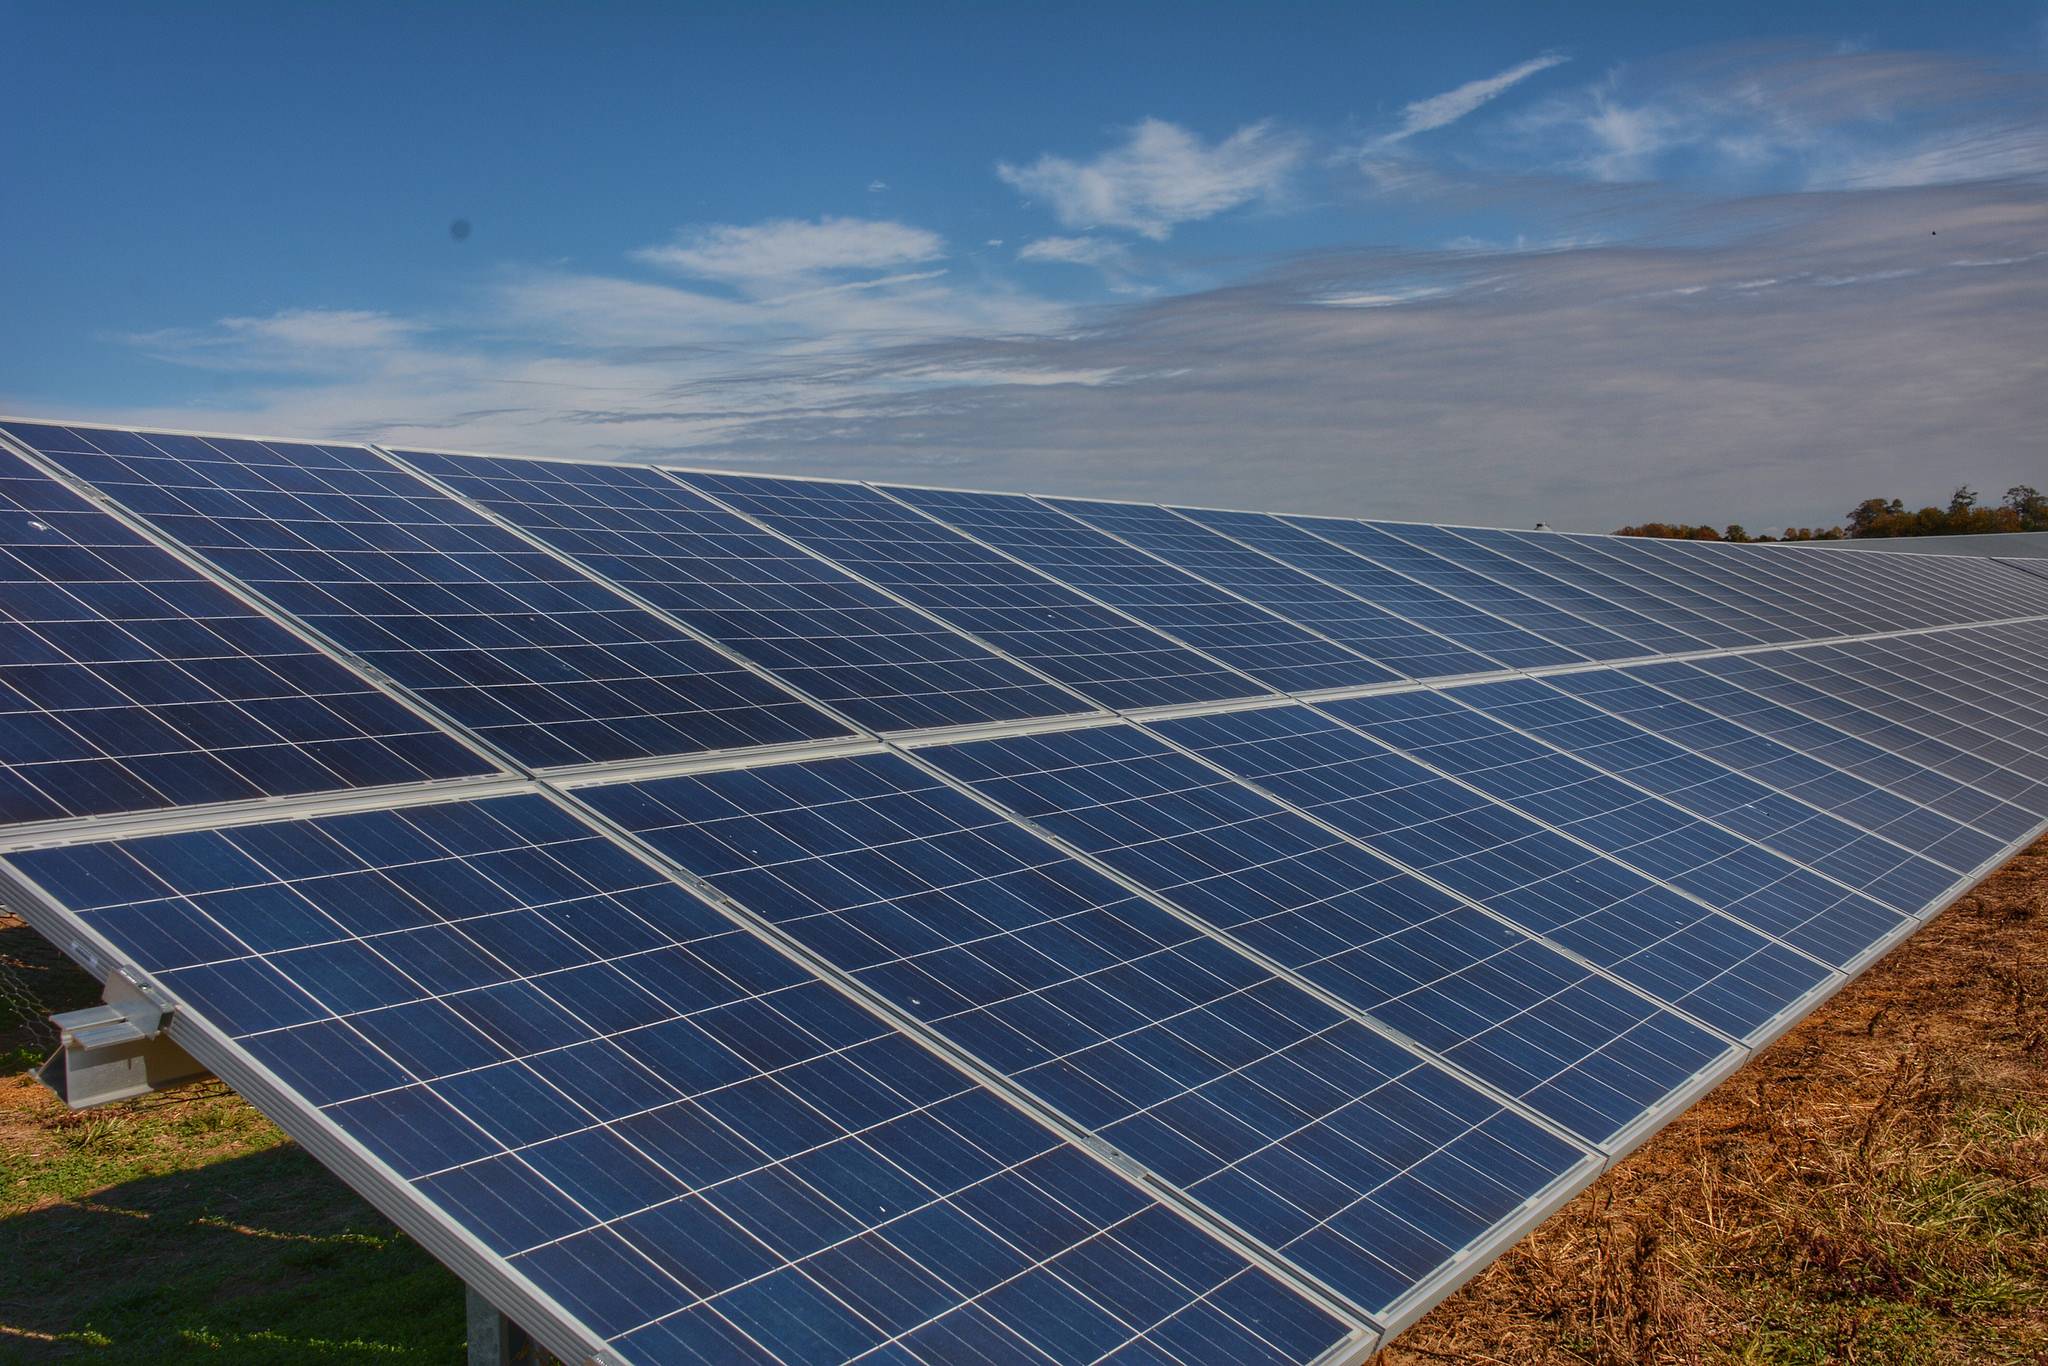 These renewable-energy projects are expected to develop innovative, early-stage solar power technologies that are designed to lower costs and improve reliability and efficiency. Image: Delaware Cooperative Extension / Flickr